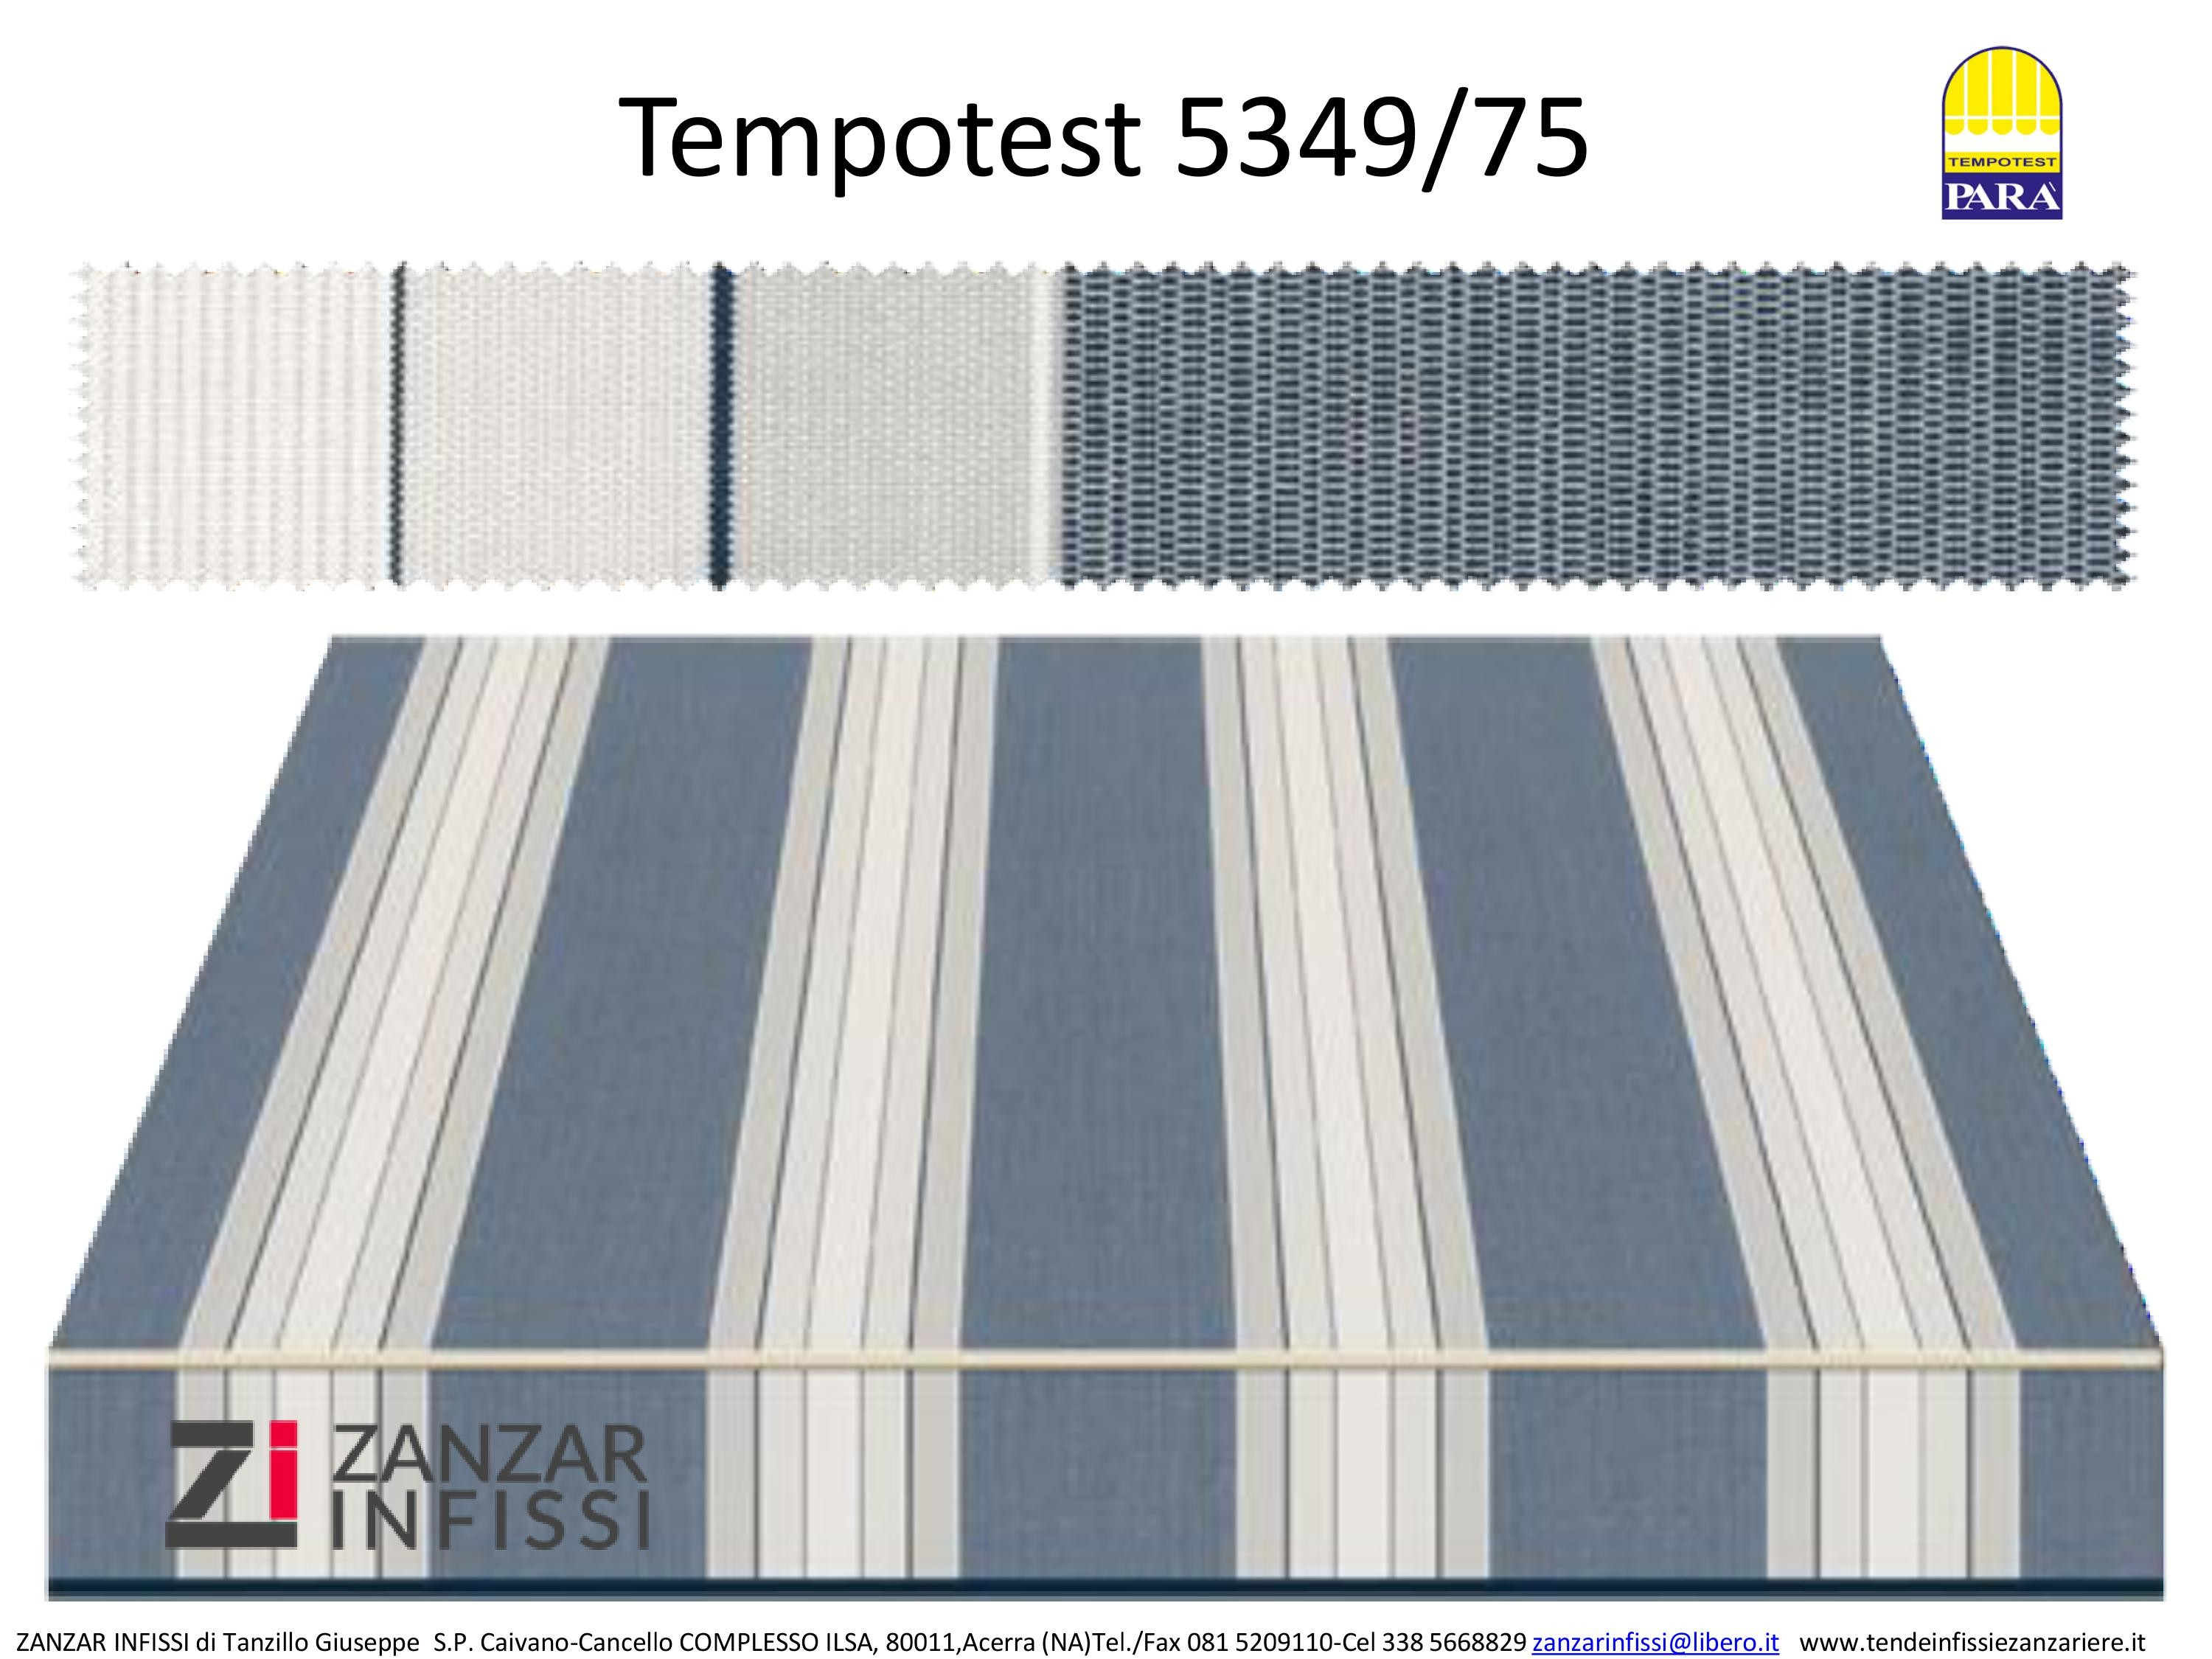 Tempotest 5349/75